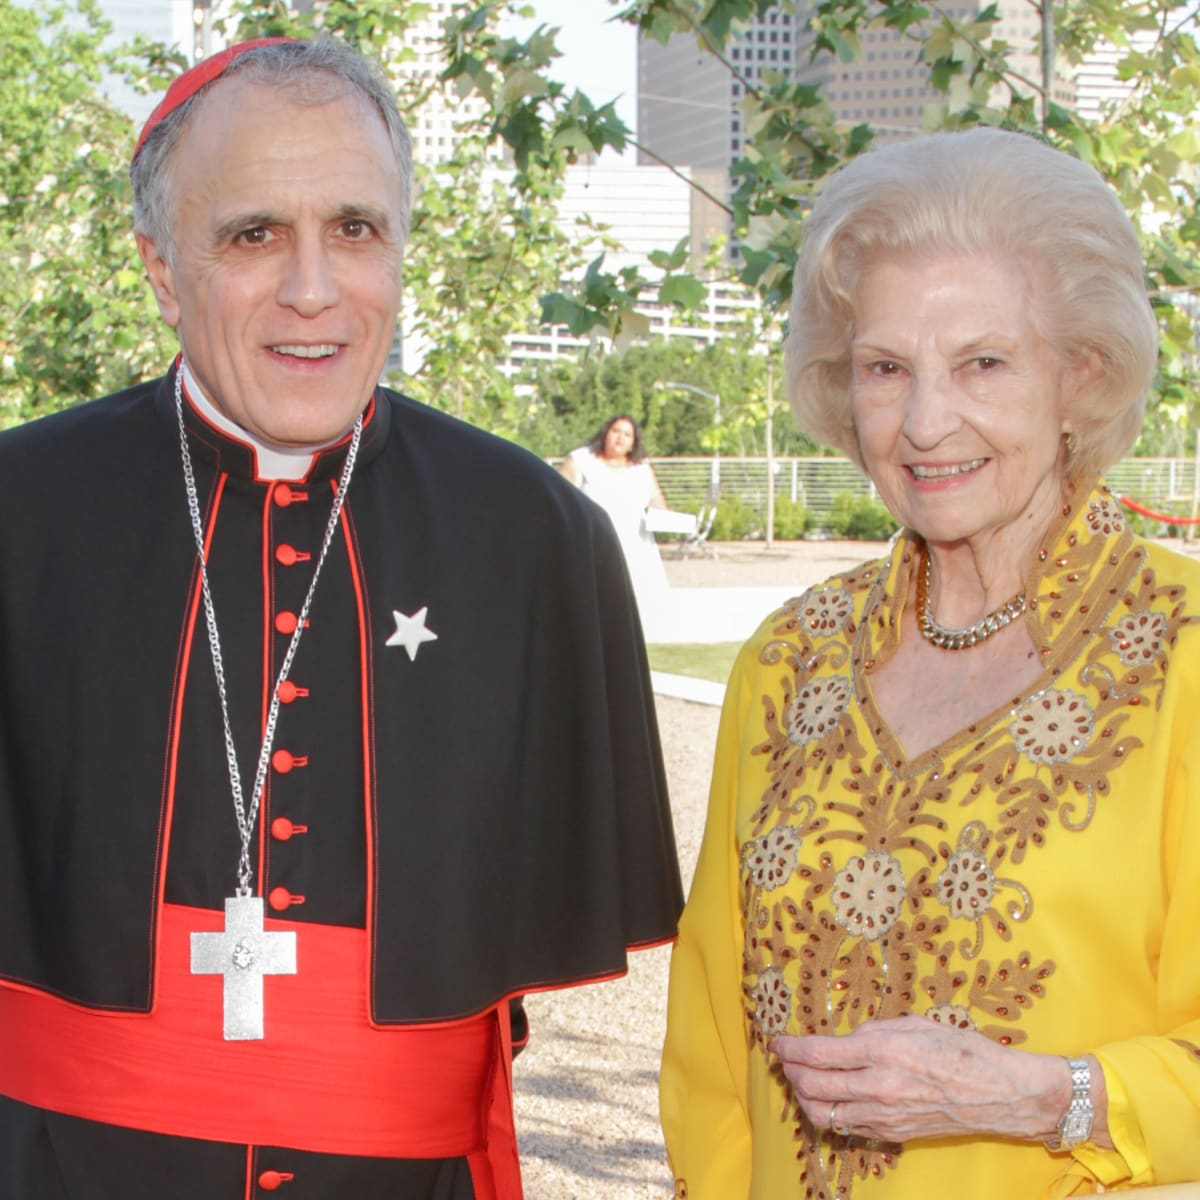 Catholic Charities Gala 5/16 Cardinal Daniel DiNardo, Rae White